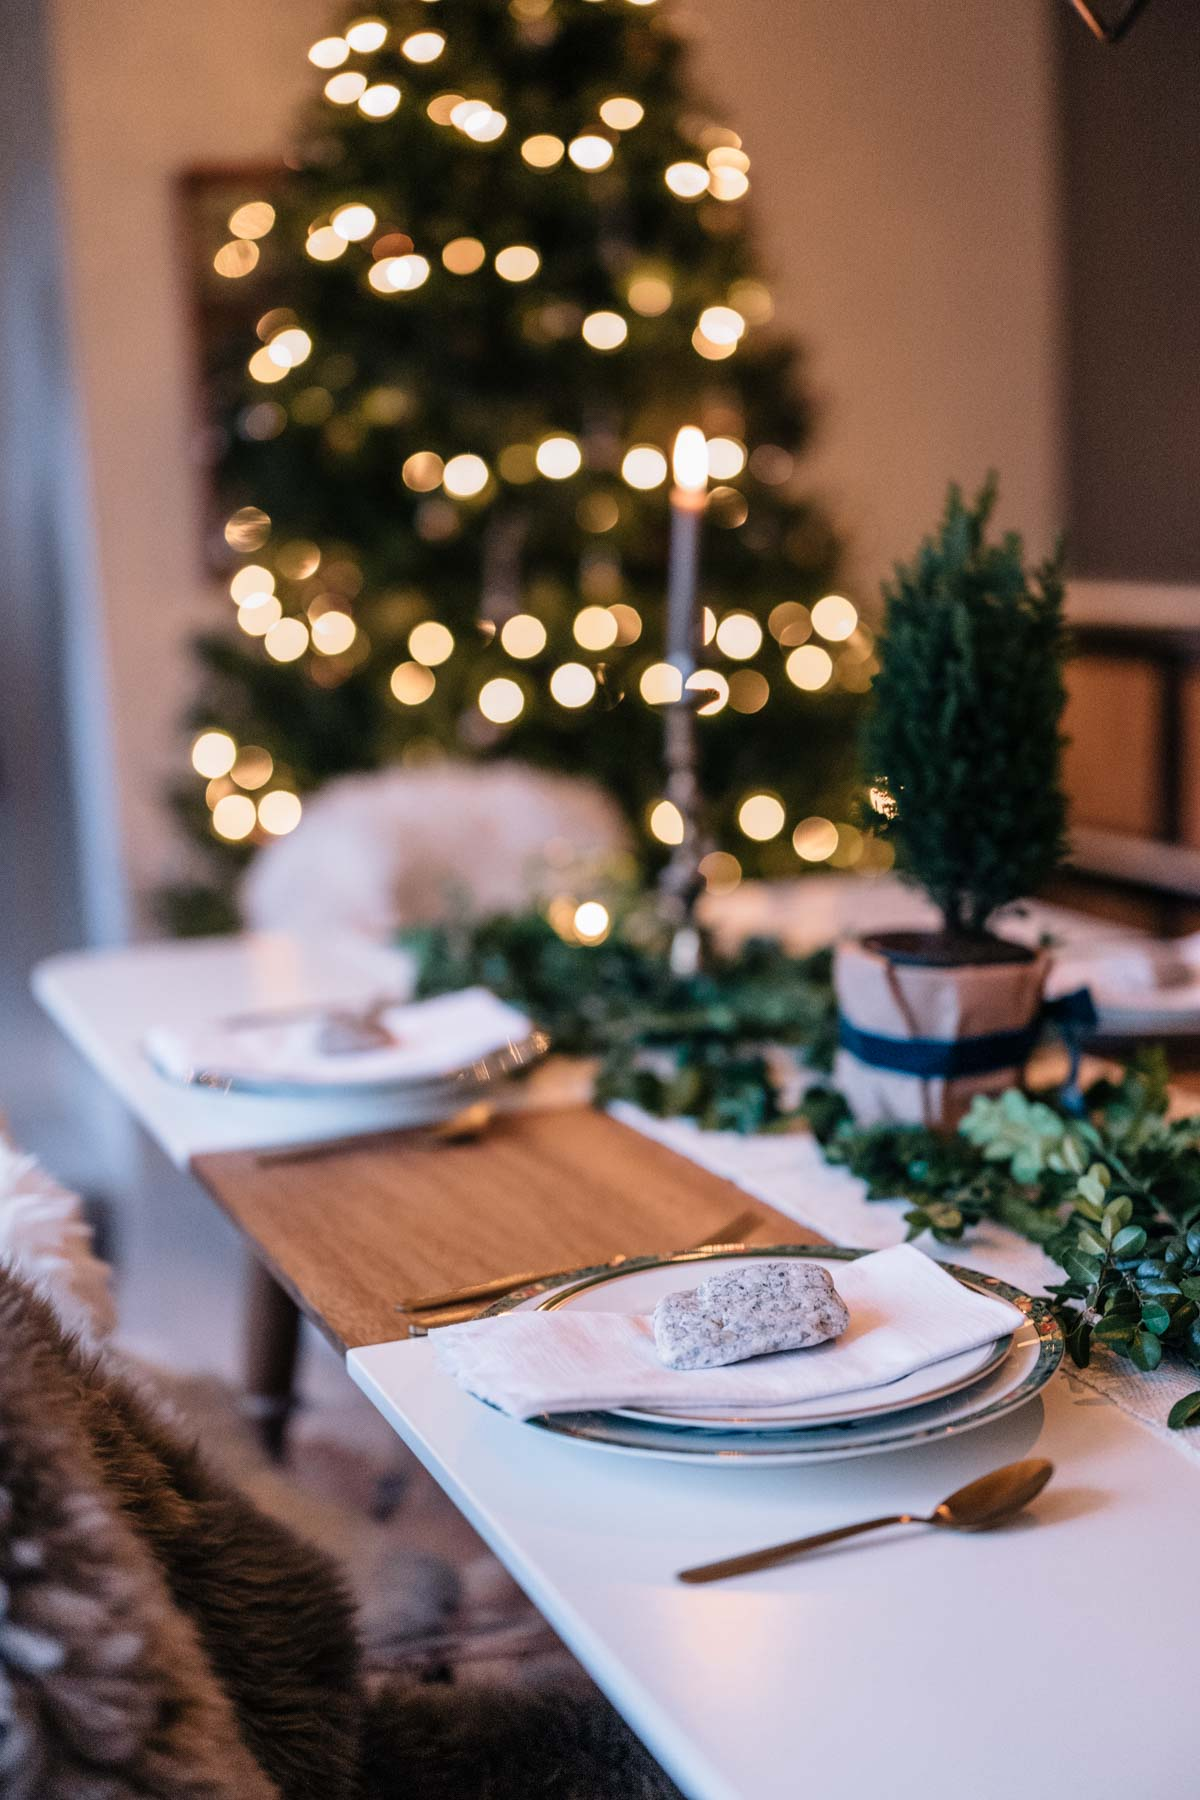 Jess Ann Kirby's home is decorated for the holidays with a rustic tablescape and large tree